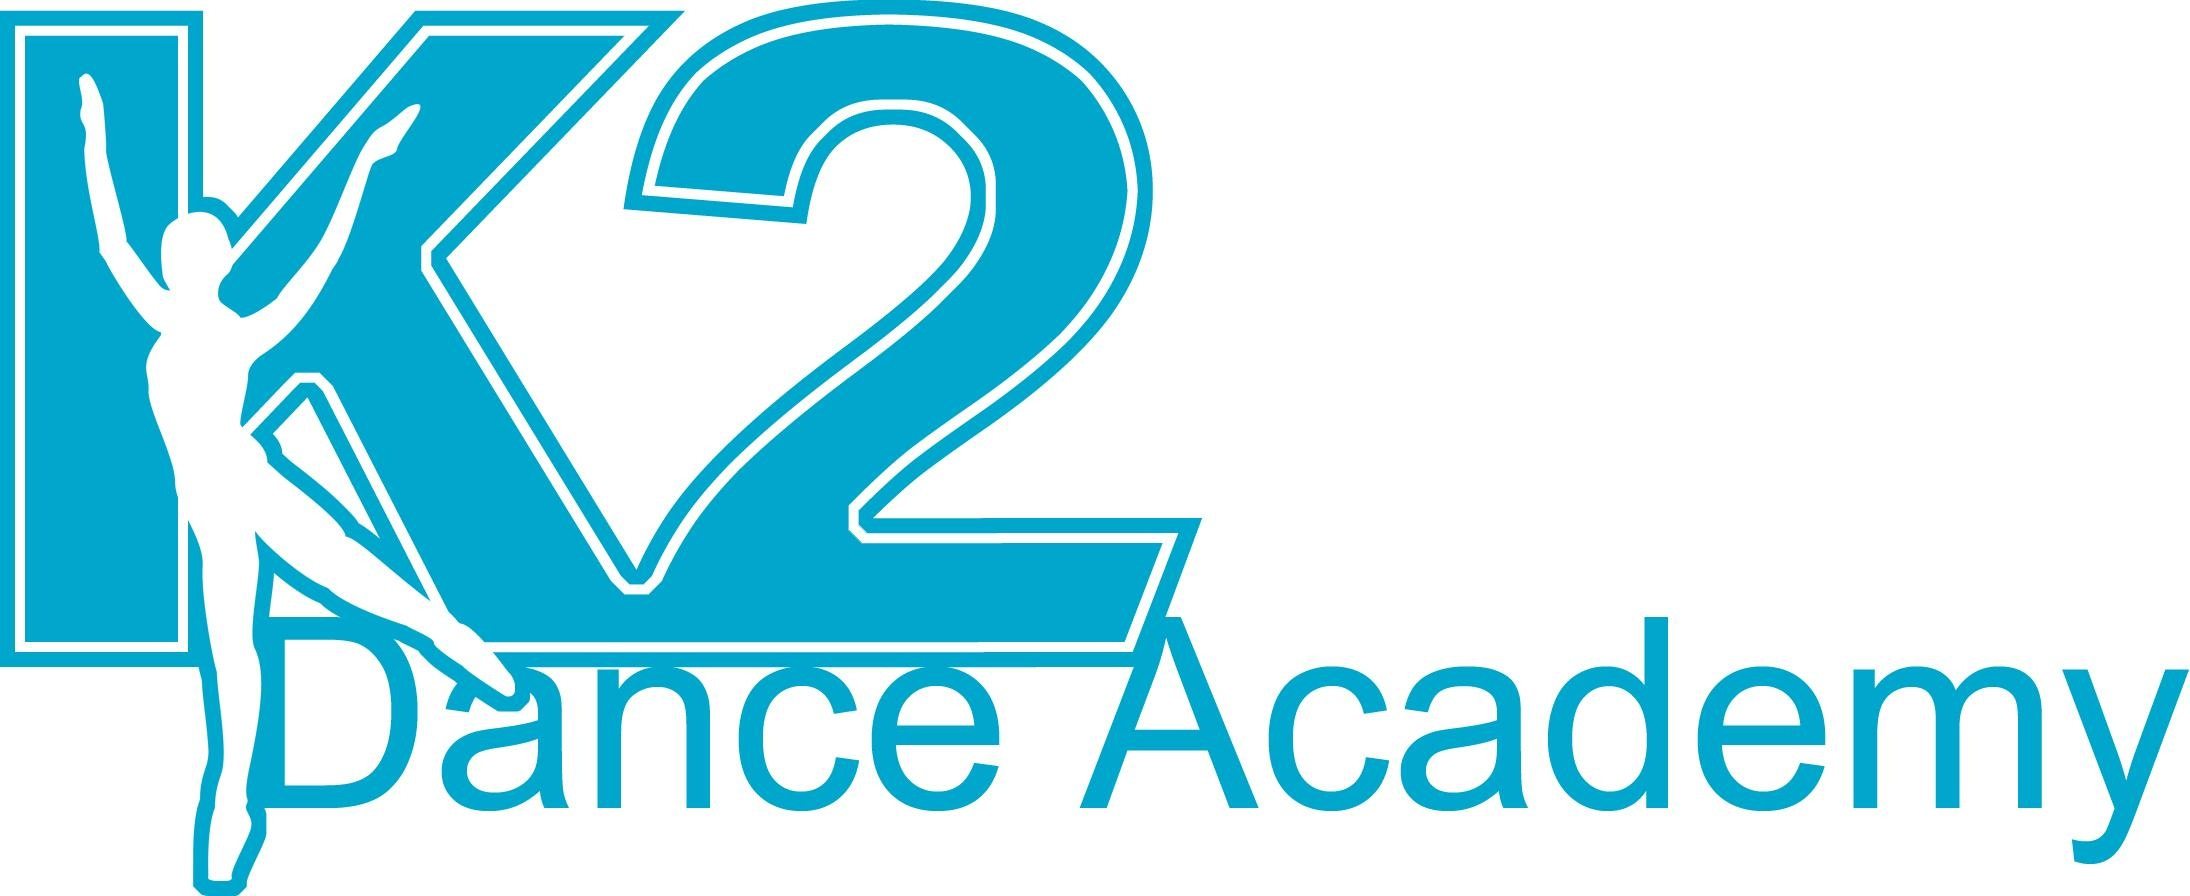 Image result for k2 dance academy